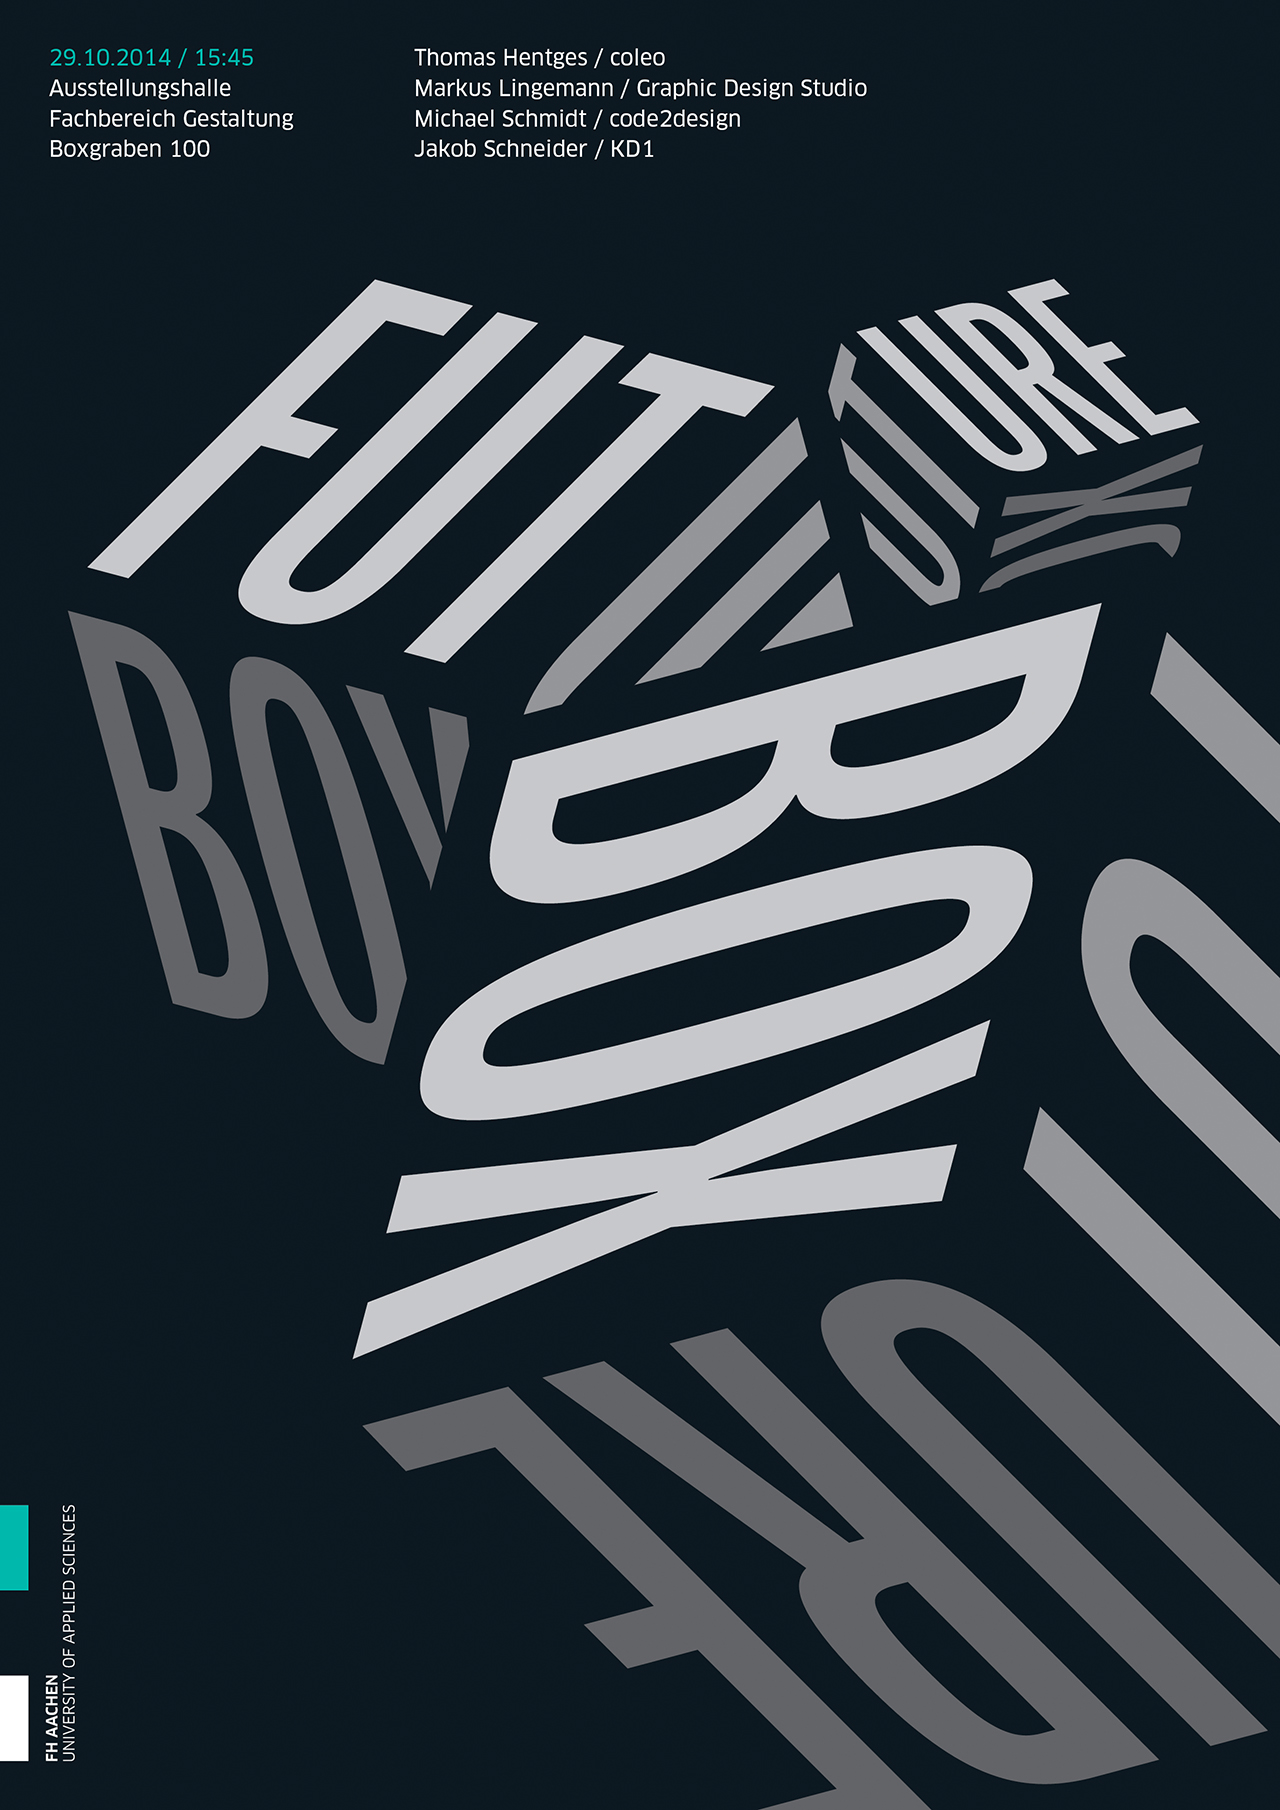 FUTUREBOX Plakate 291014 3